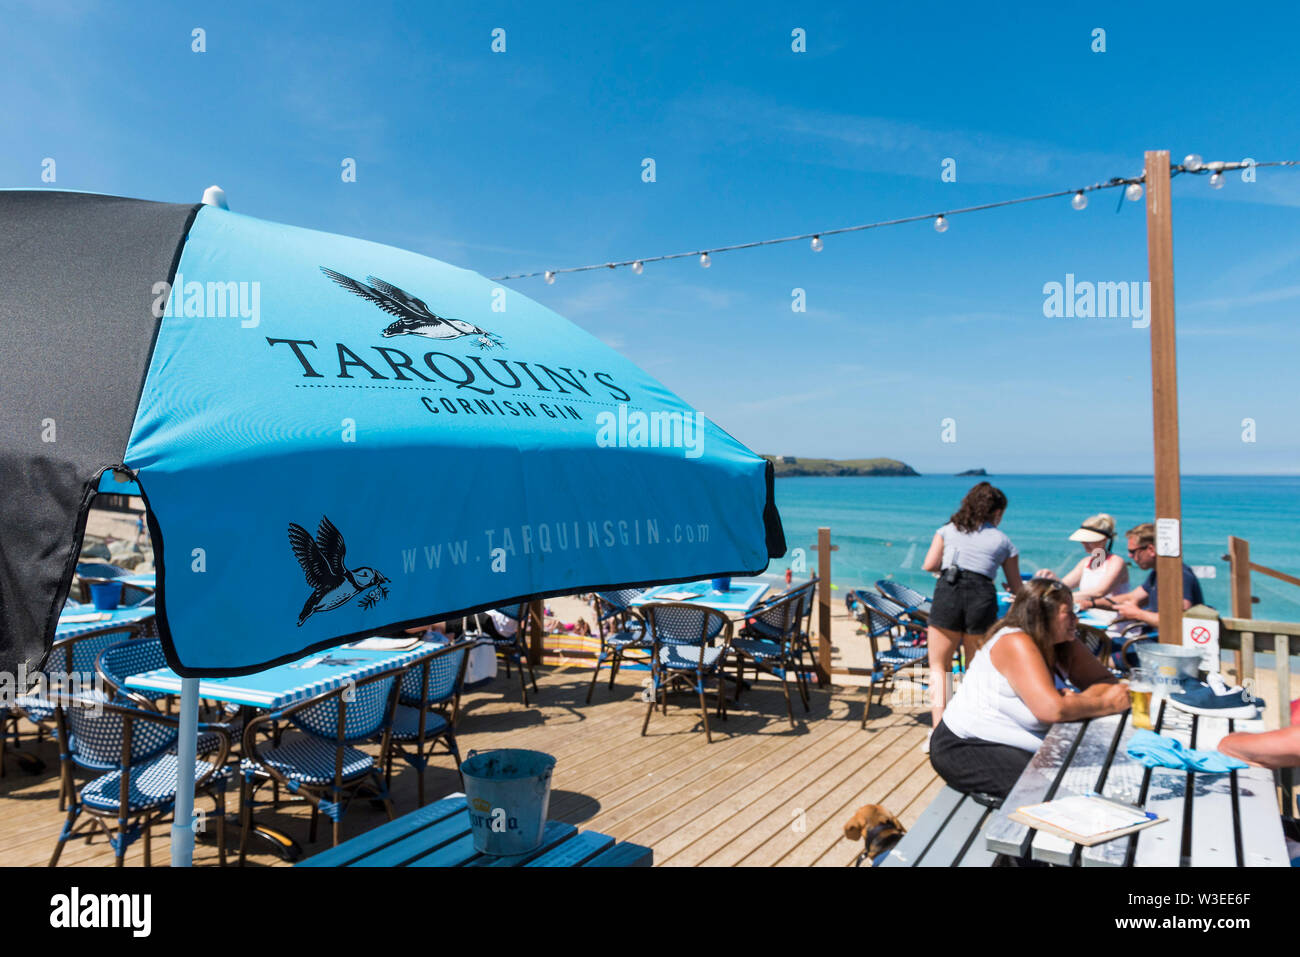 Tarquin's Gin sponsored umbrellas providing welcome shade on a very hot day over Fistral Beach Bar in Fistral in Newquay in Cornwall. - Stock Image